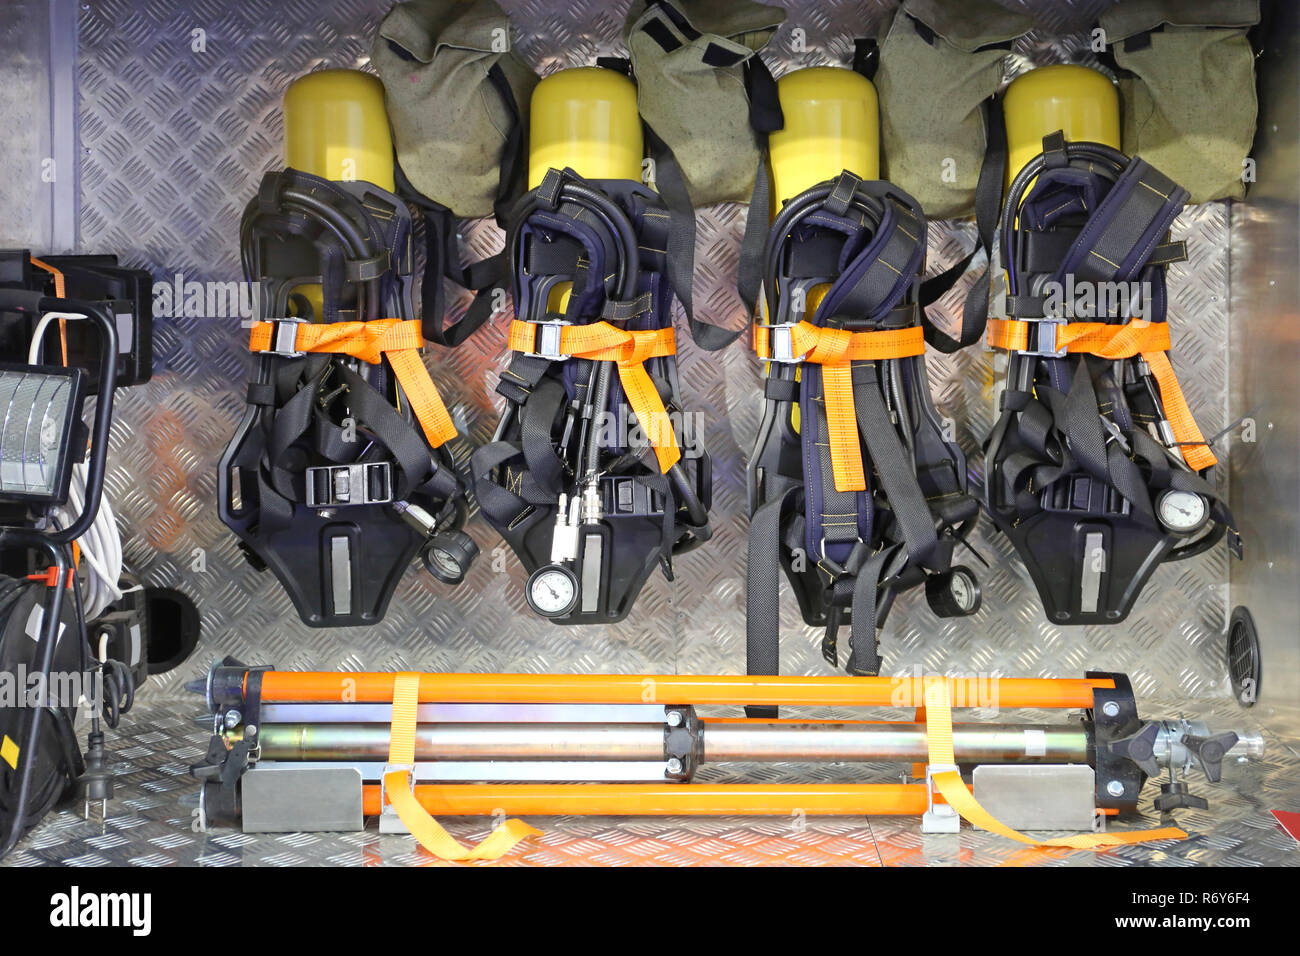 hight resolution of self contained breathing apparatus stock image